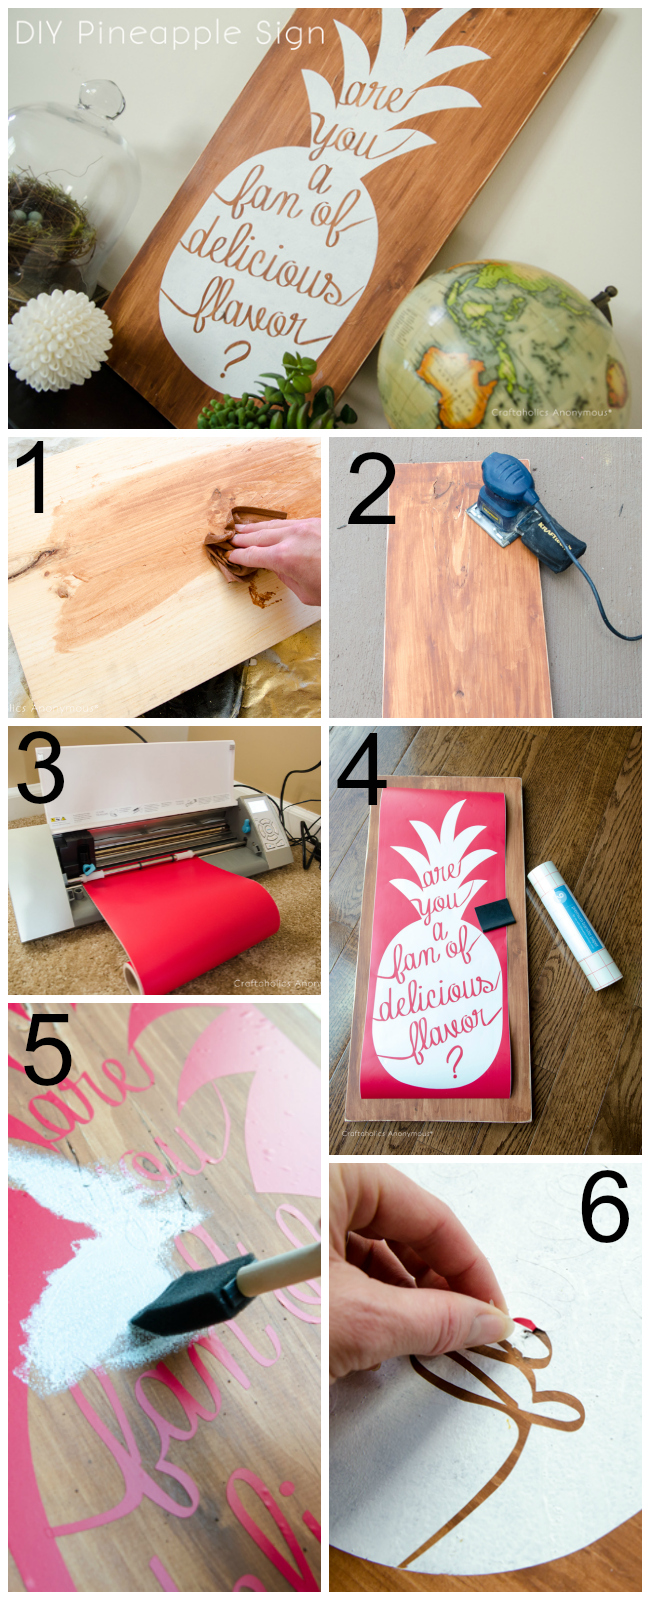 DIY Wood Pineapple Sign tutorial